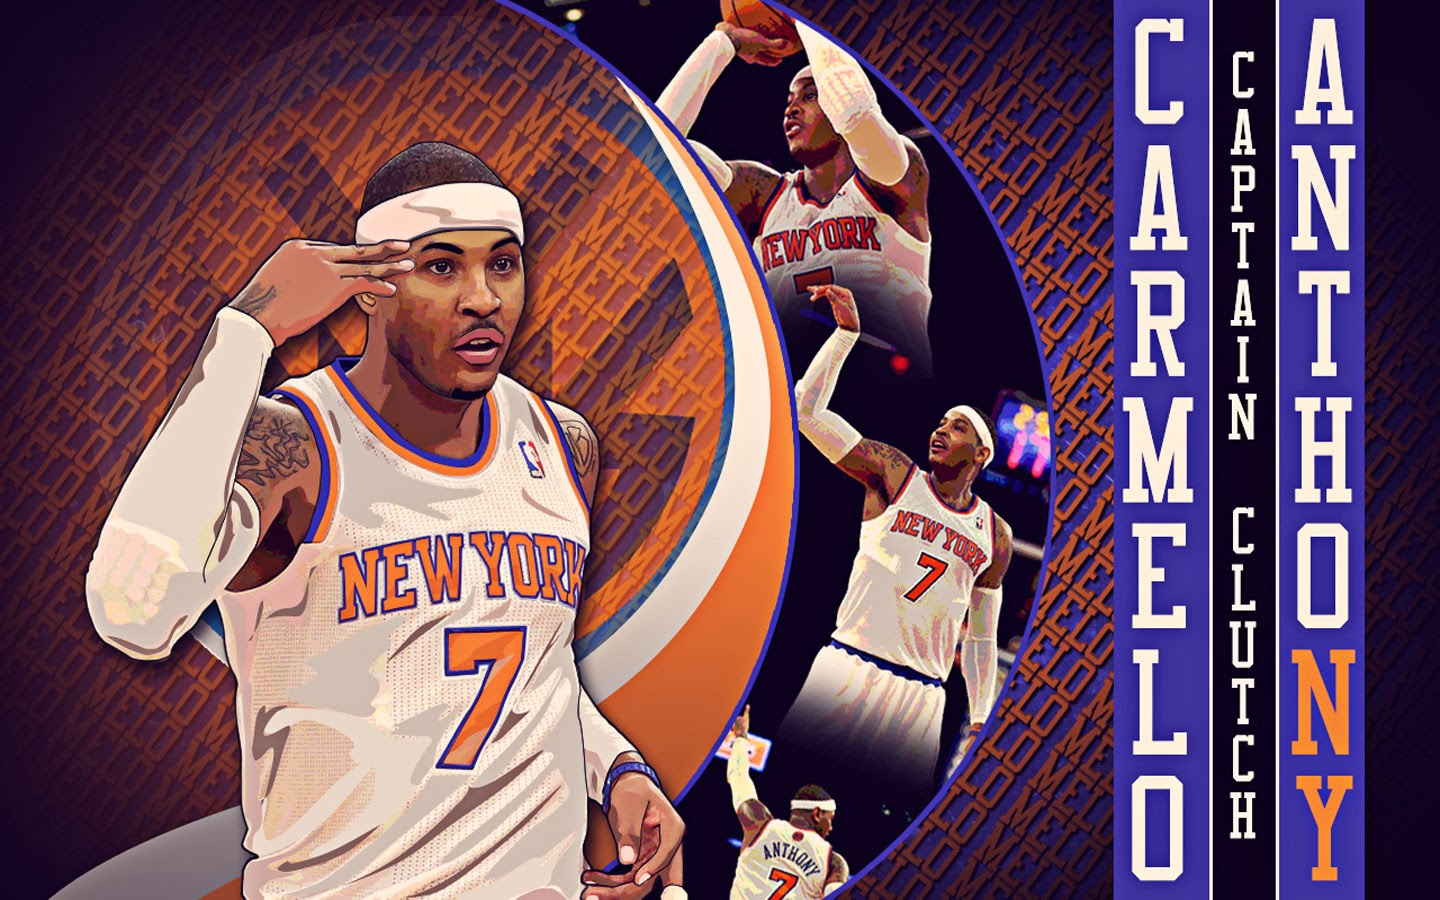 Carmelo Anthony New Wallpaper 2014 - Its All About Basketball